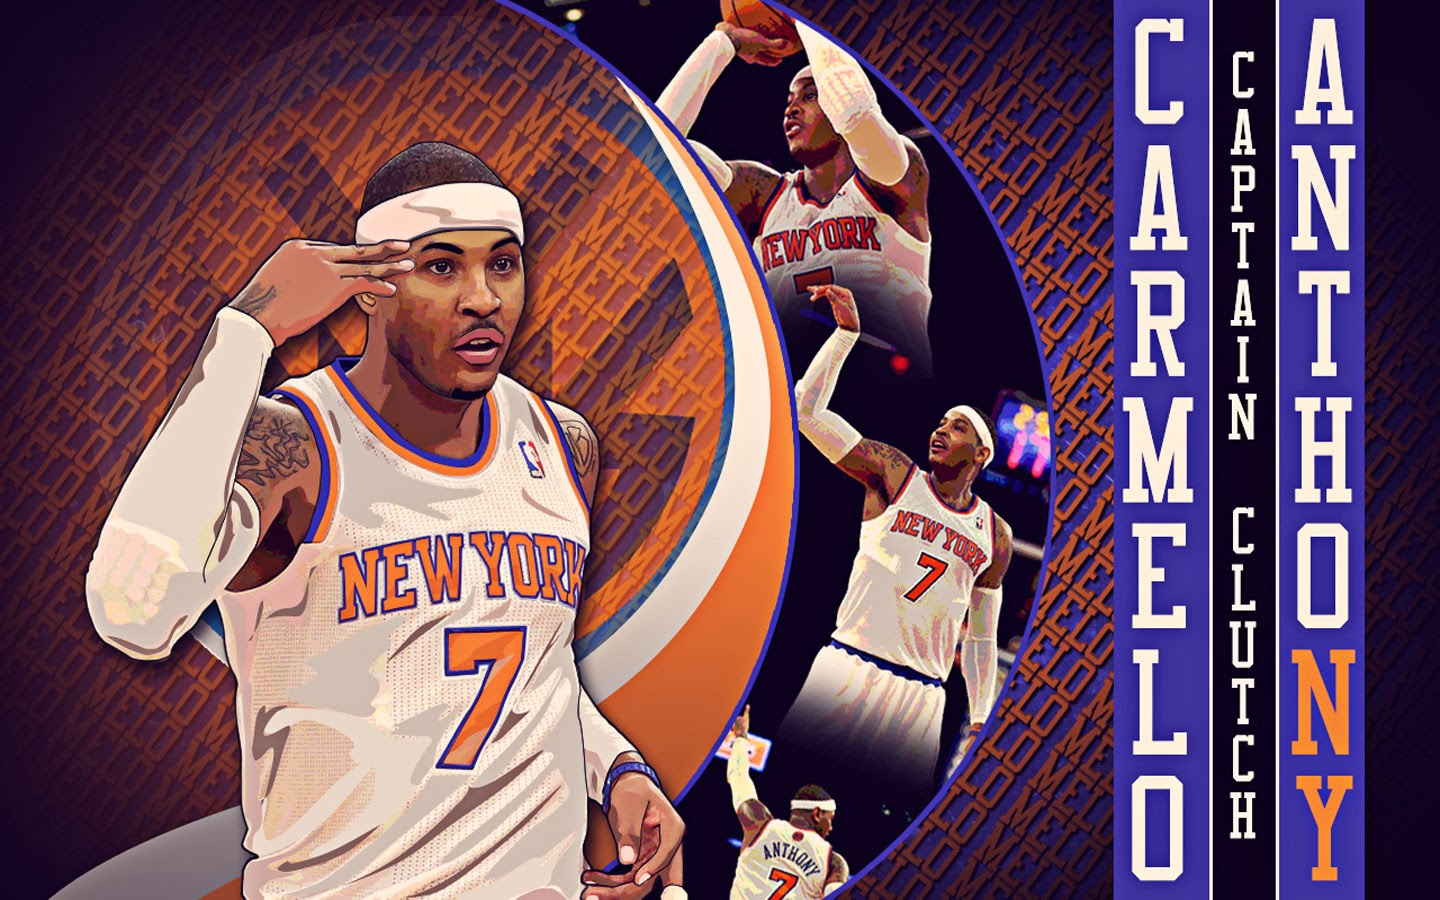 Carmelo Anthony New Wallpaper 2014 - Its All About Basketball